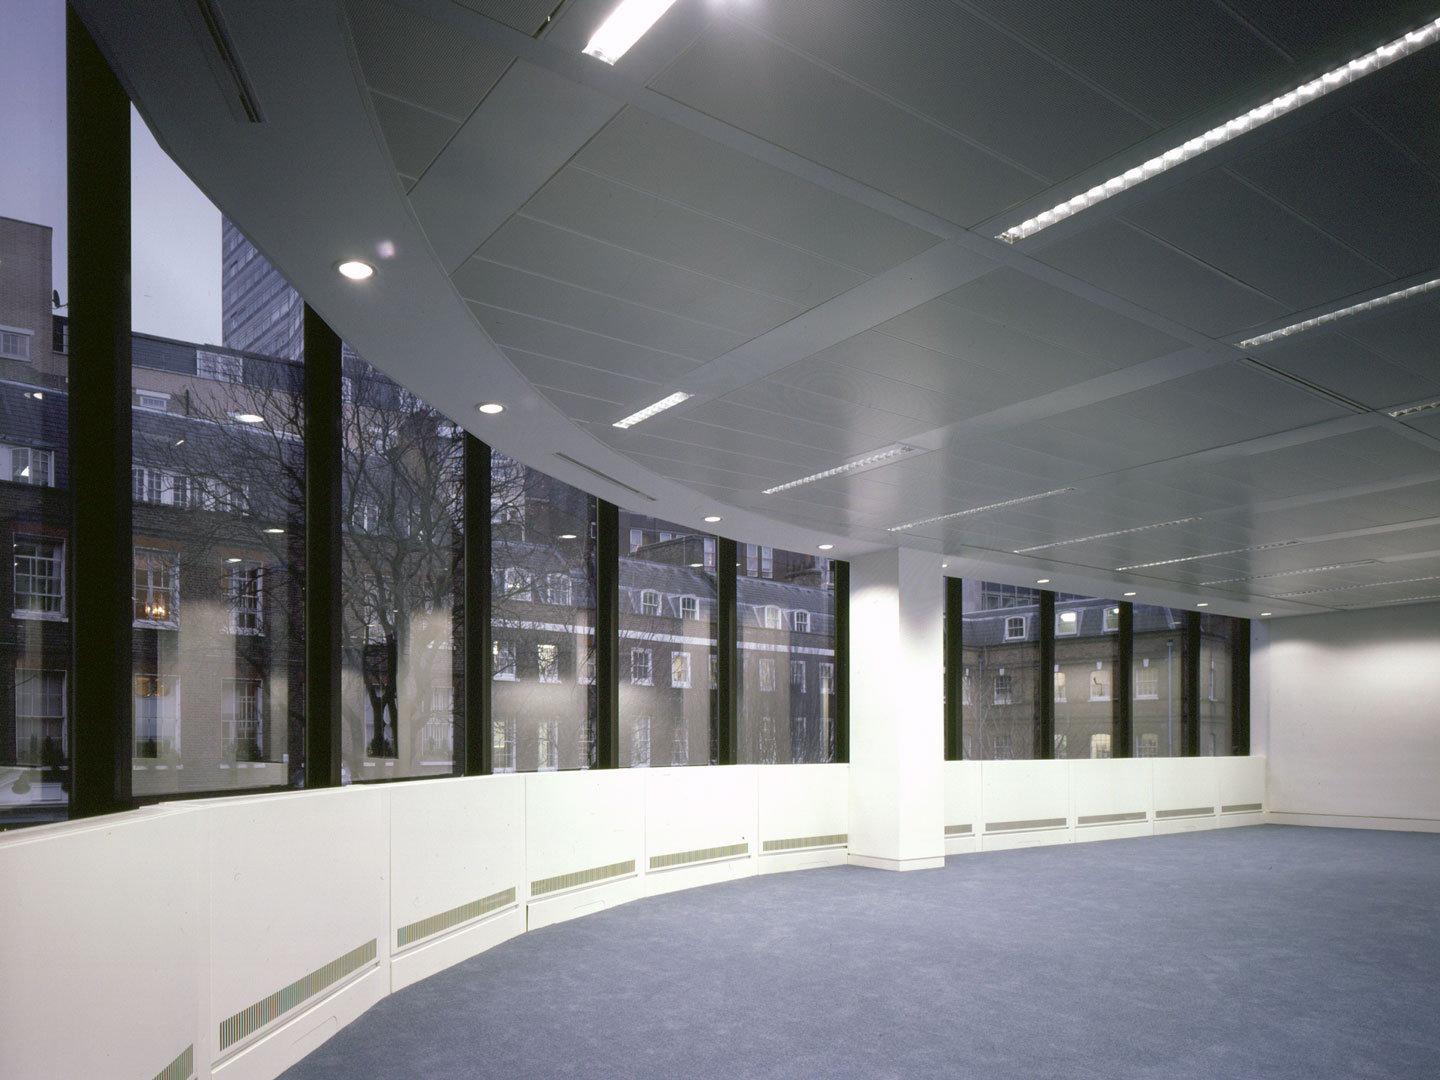 new_city_court-interior_shot